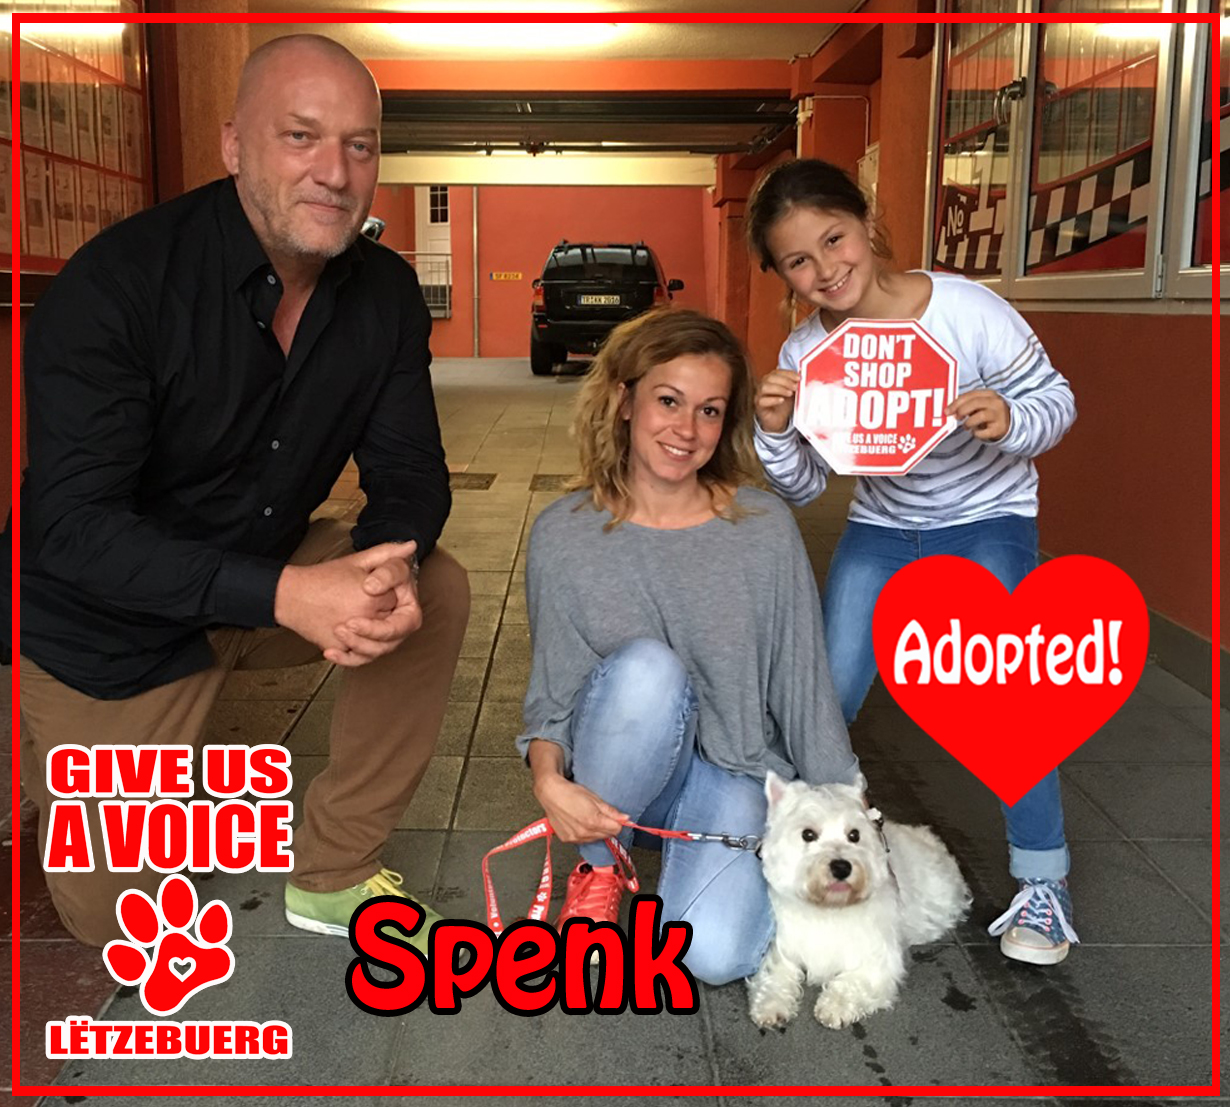 Spenk Adopted! copy